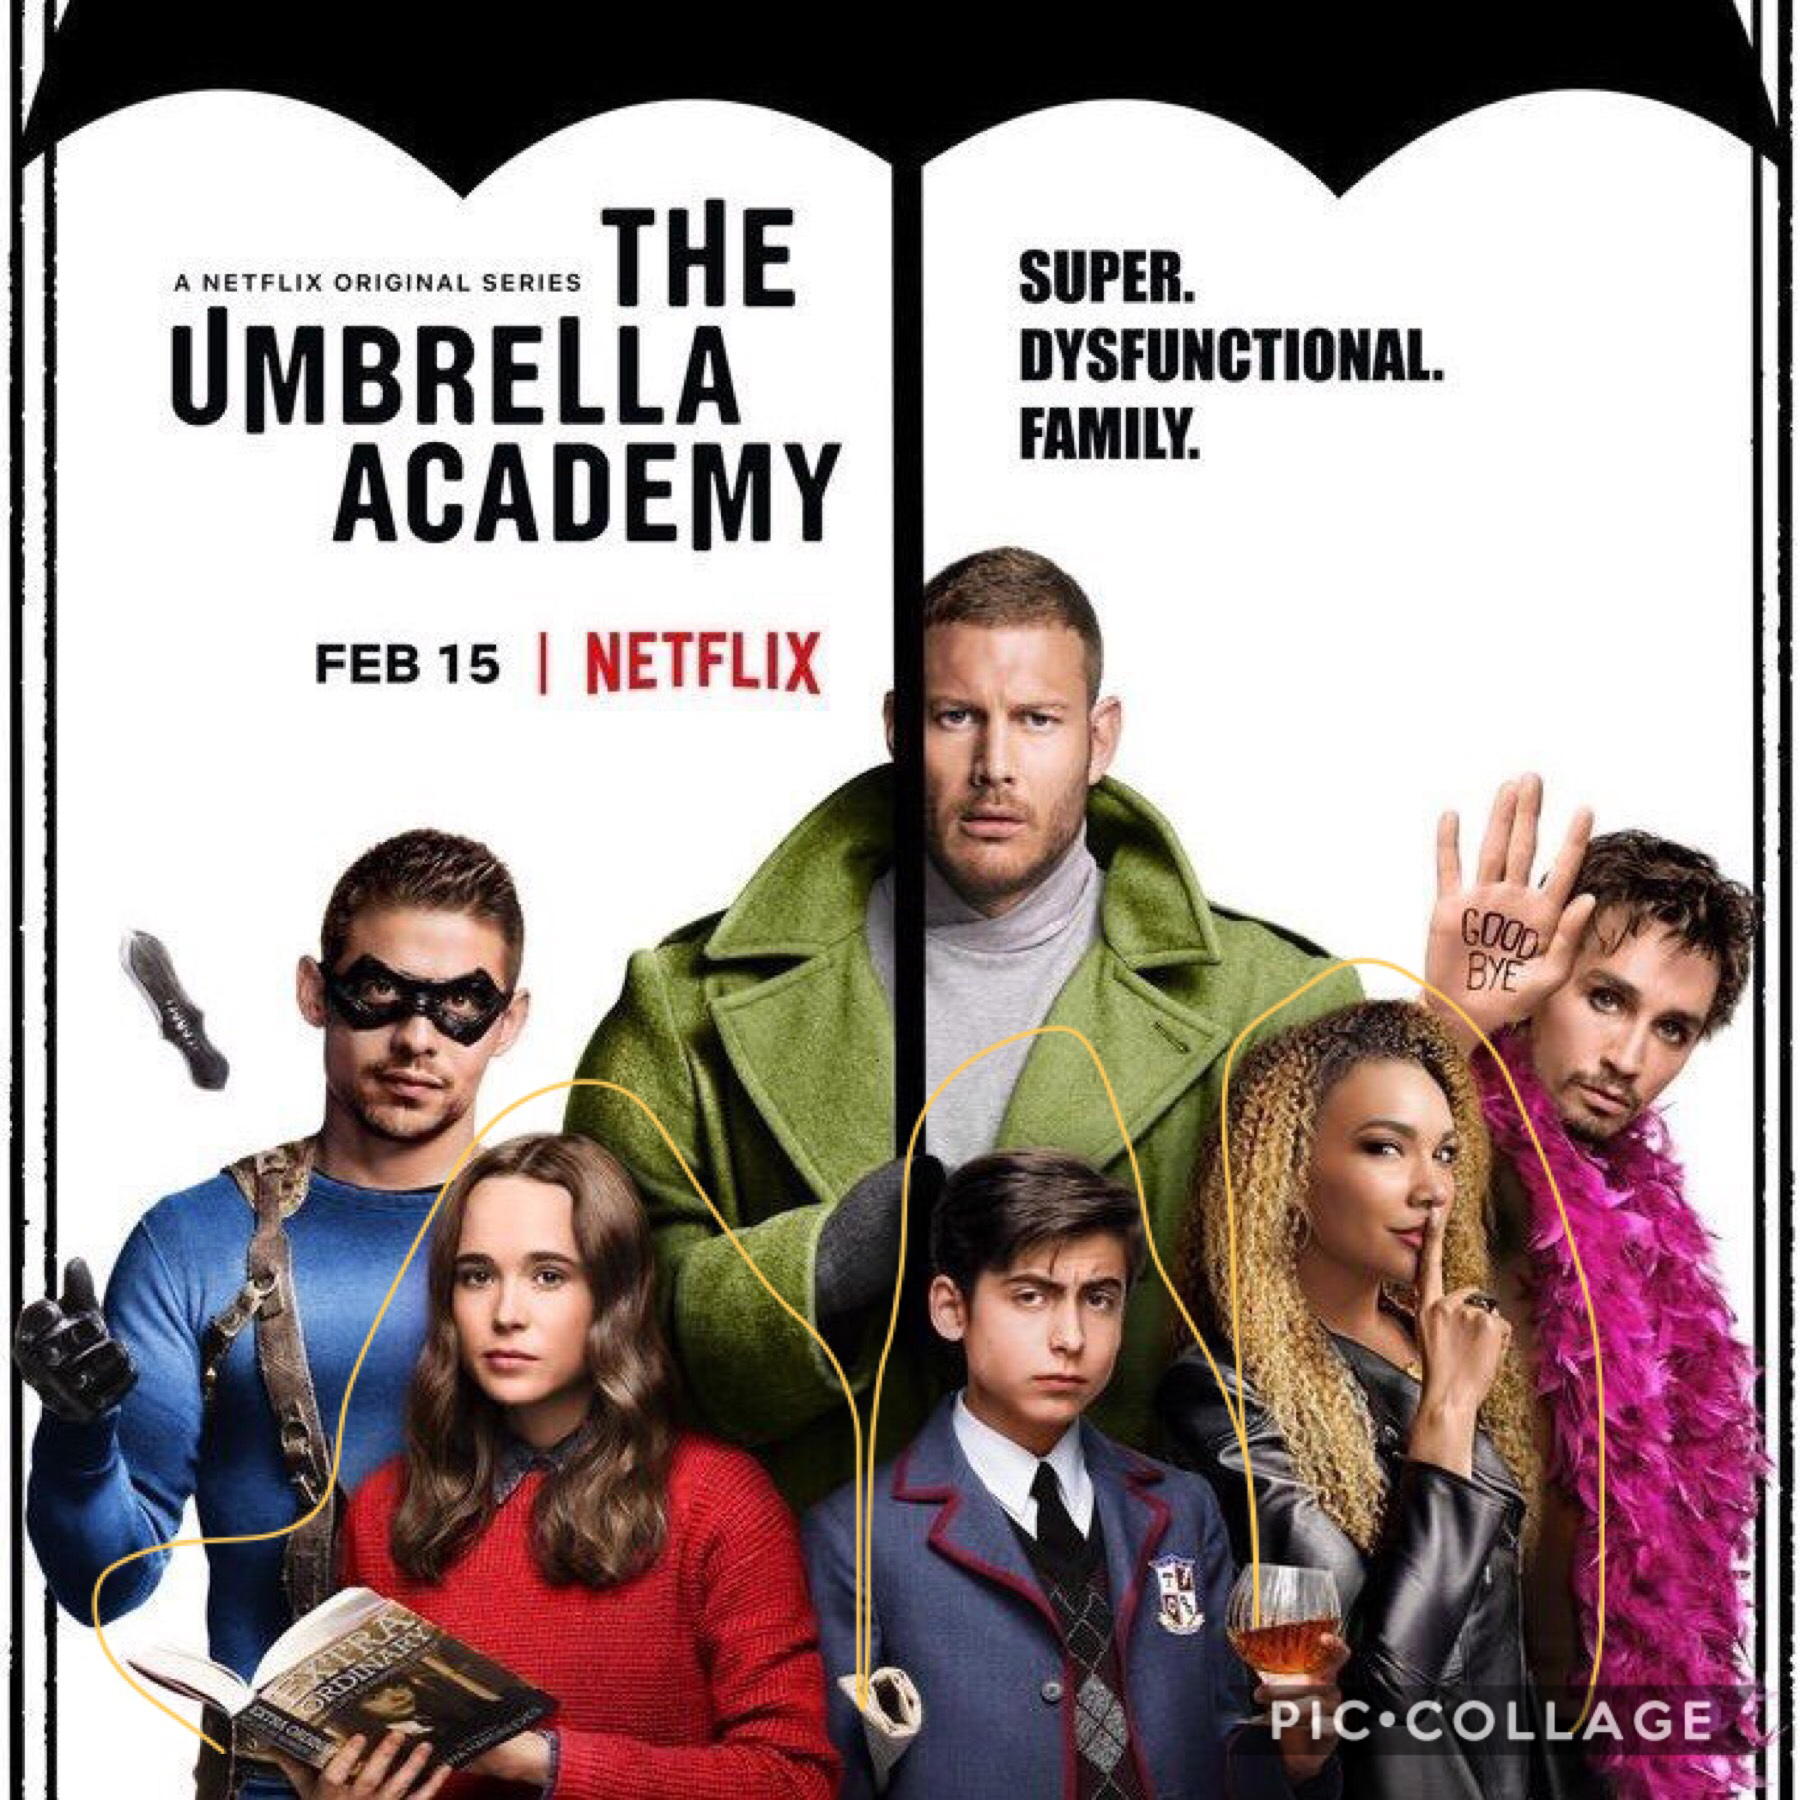 🍍   I'm going to do this thing were I do a collage for each umbrella academy character starting with number 1 (Luther/spaceboy) and then so on !    ~🍍